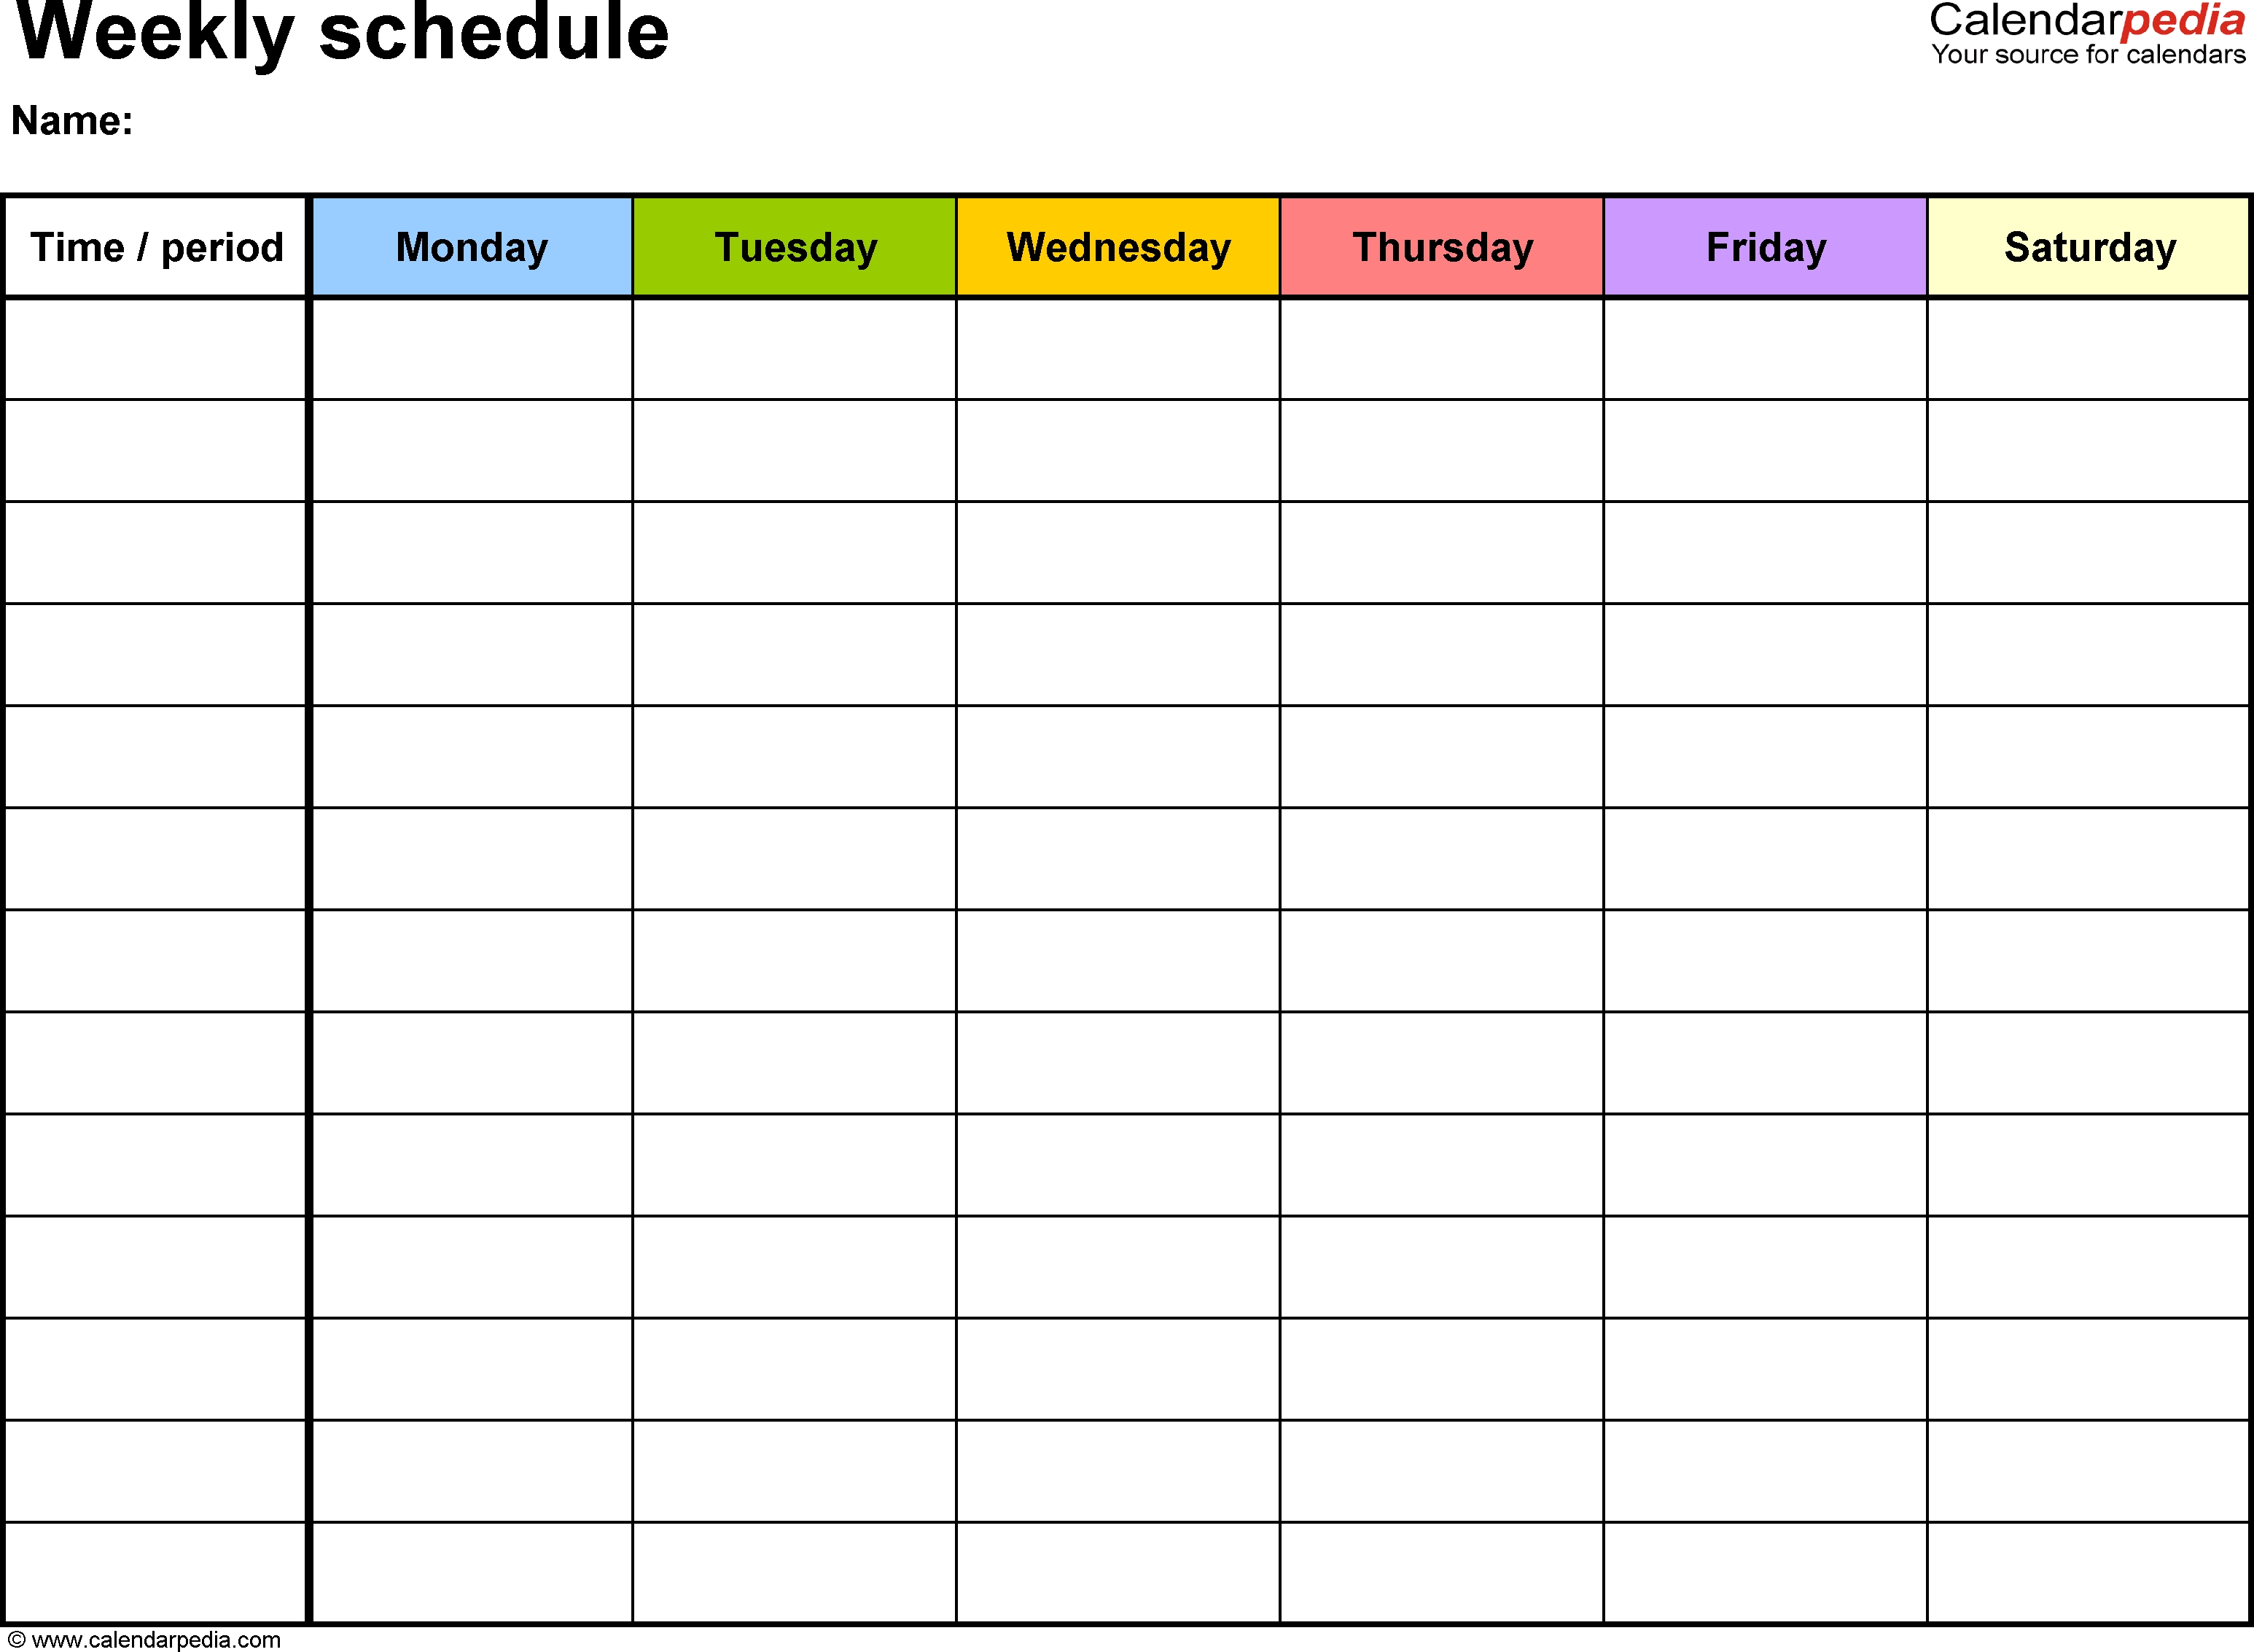 Free Weekly Schedule Templates For Word - 18 Templates in One Week Calendar Template With Hours